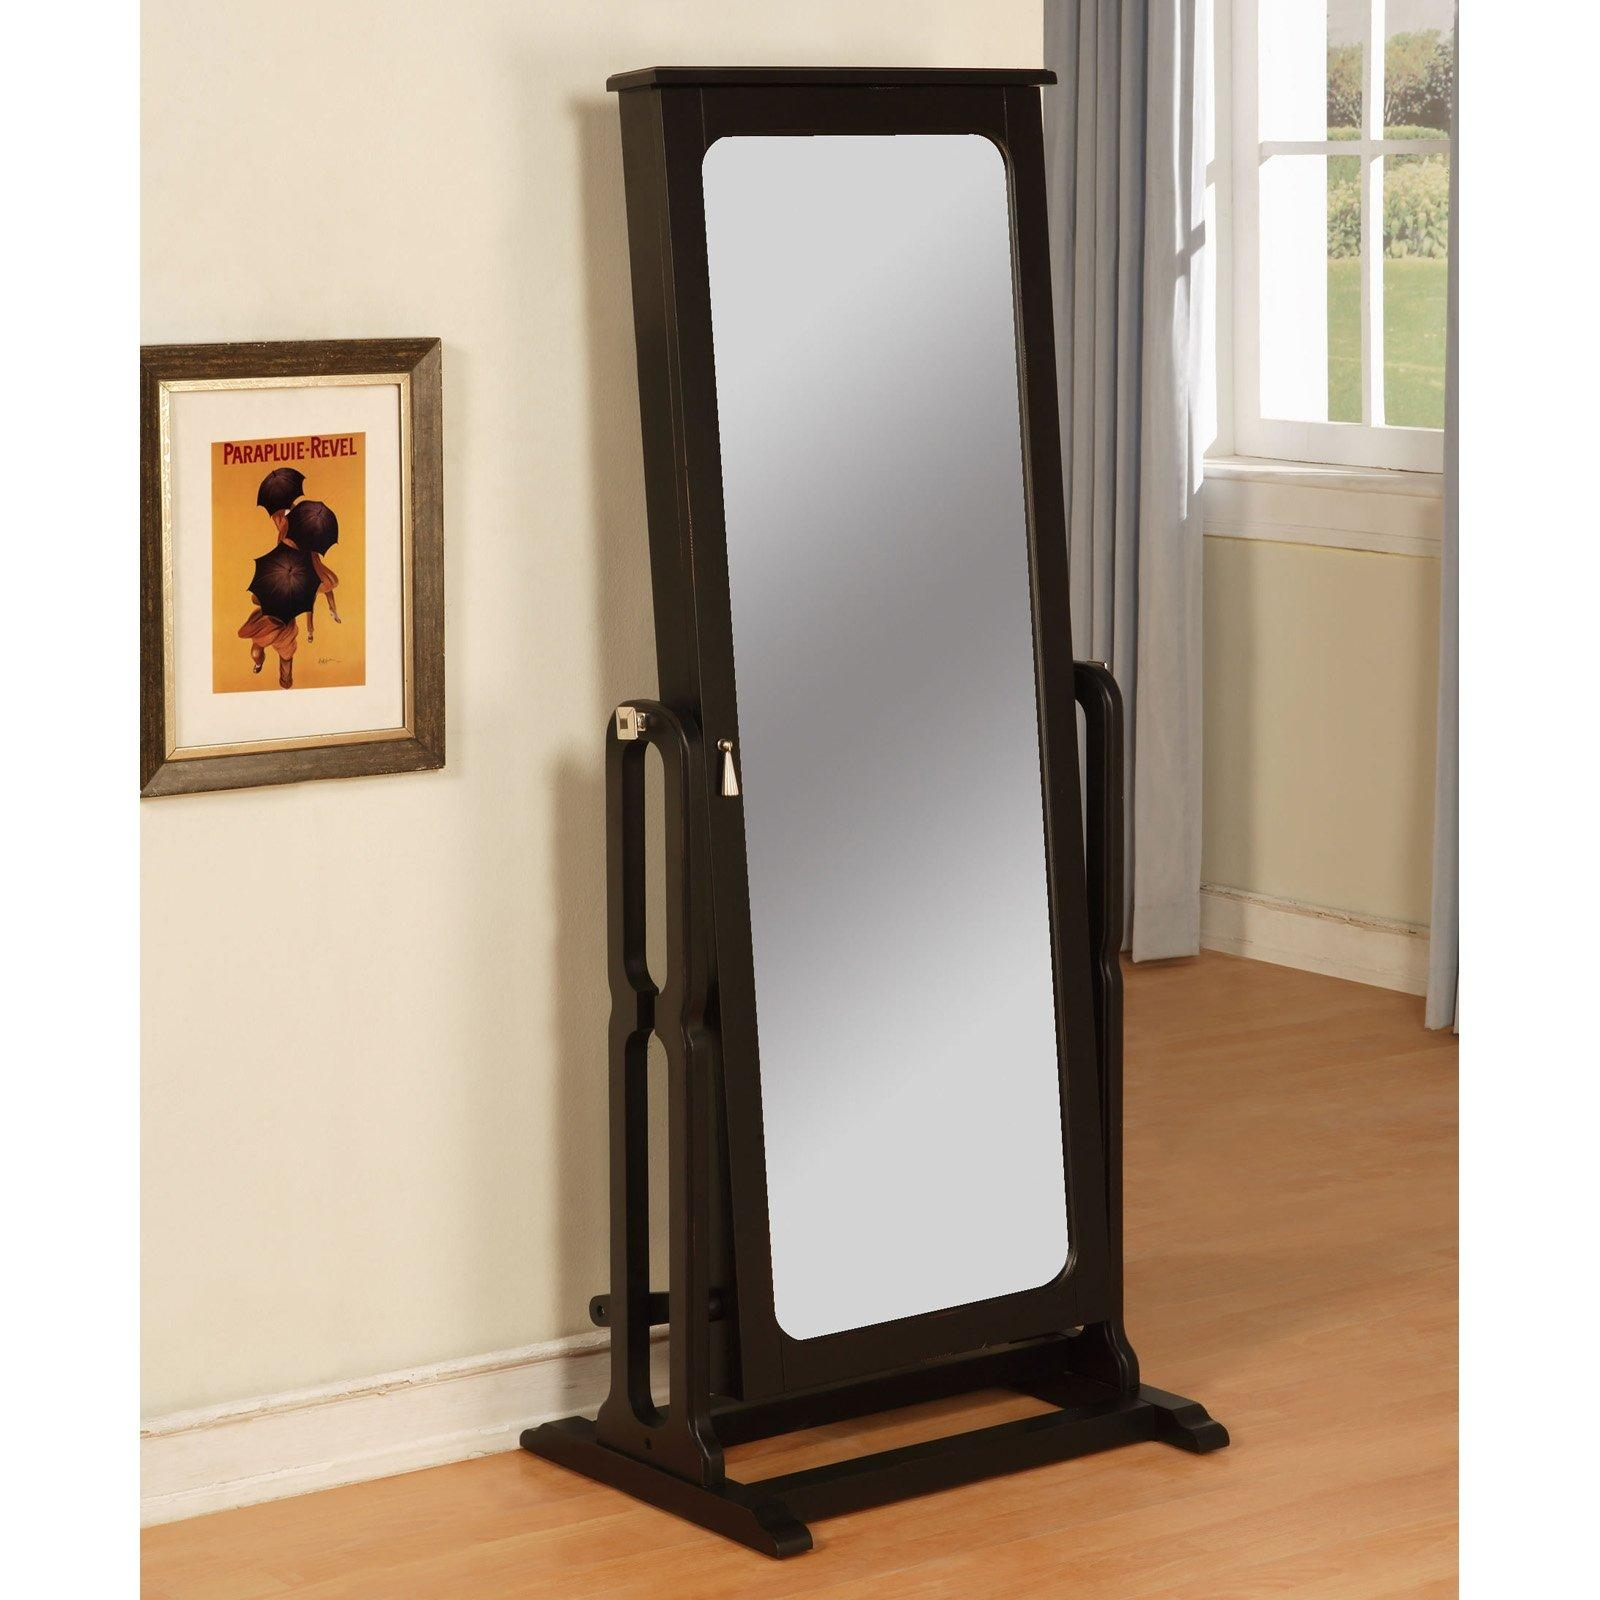 Decorating: Wrought Iron Cheval Mirror With Wooden Floor And Cream For Wrought Iron Standing Mirror (Image 6 of 20)